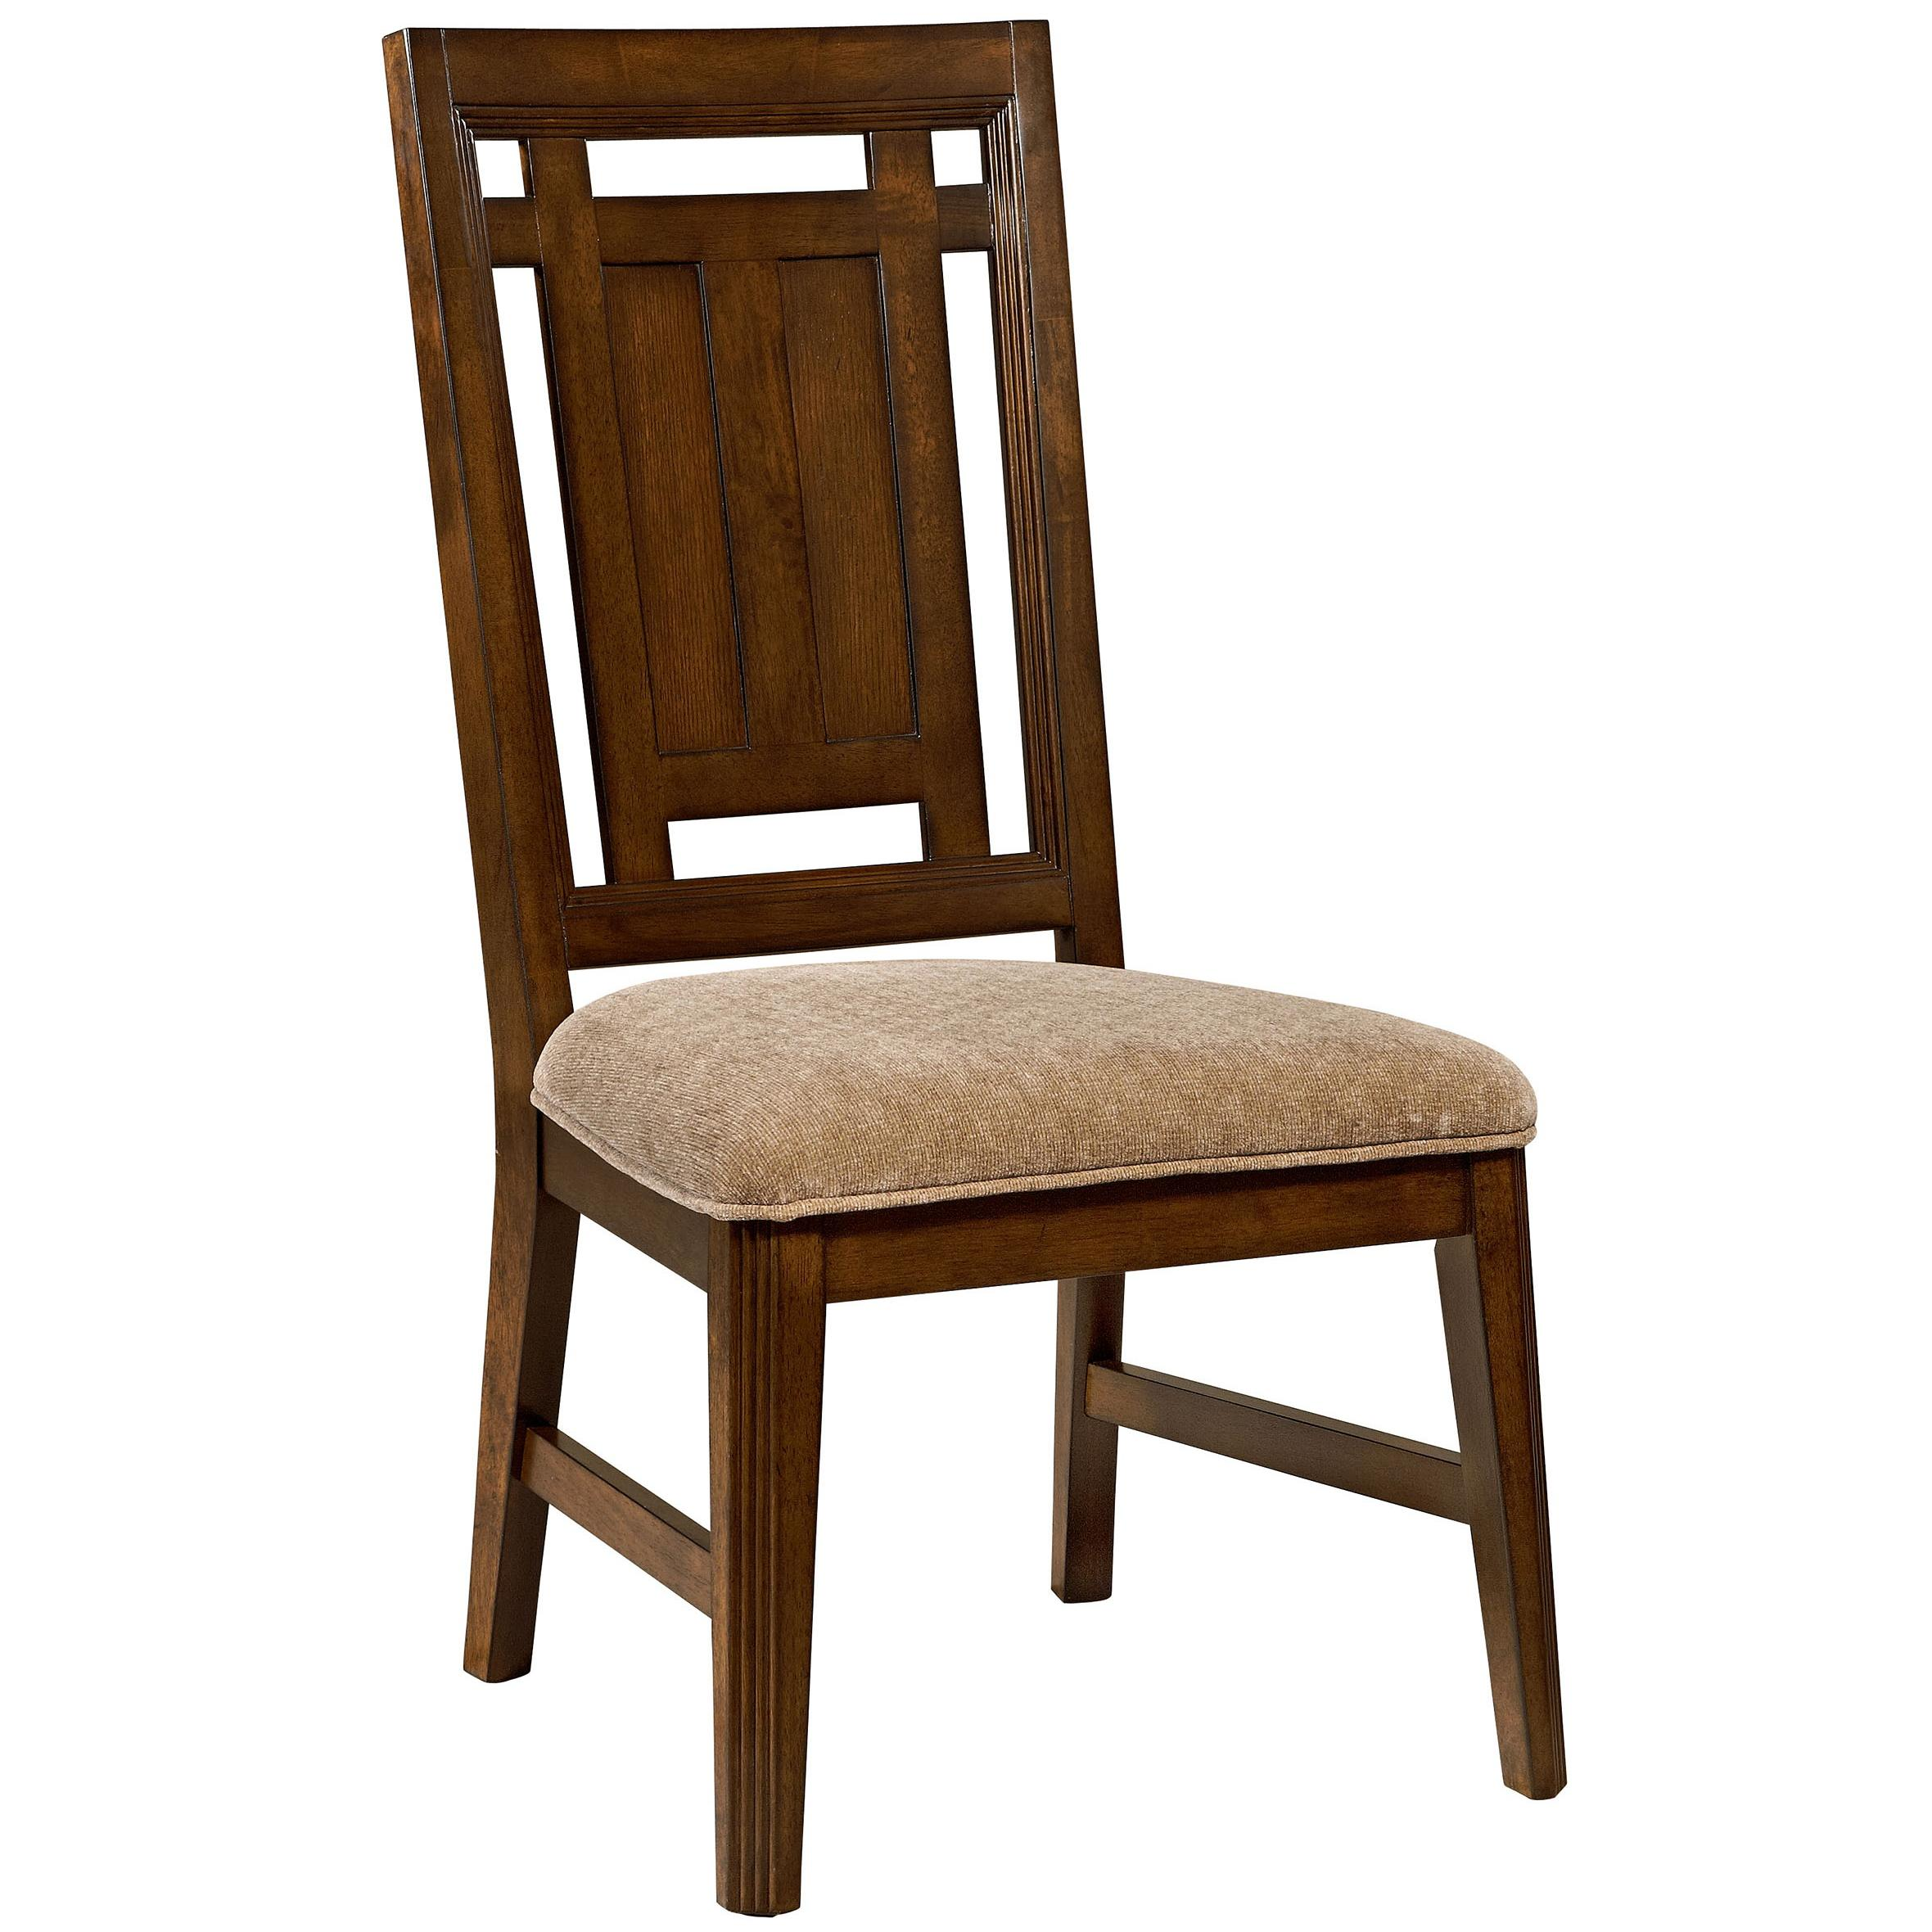 Broyhill Furniture Estes Park Uphosltered Seat Side Chair - Item Number: 4364-581